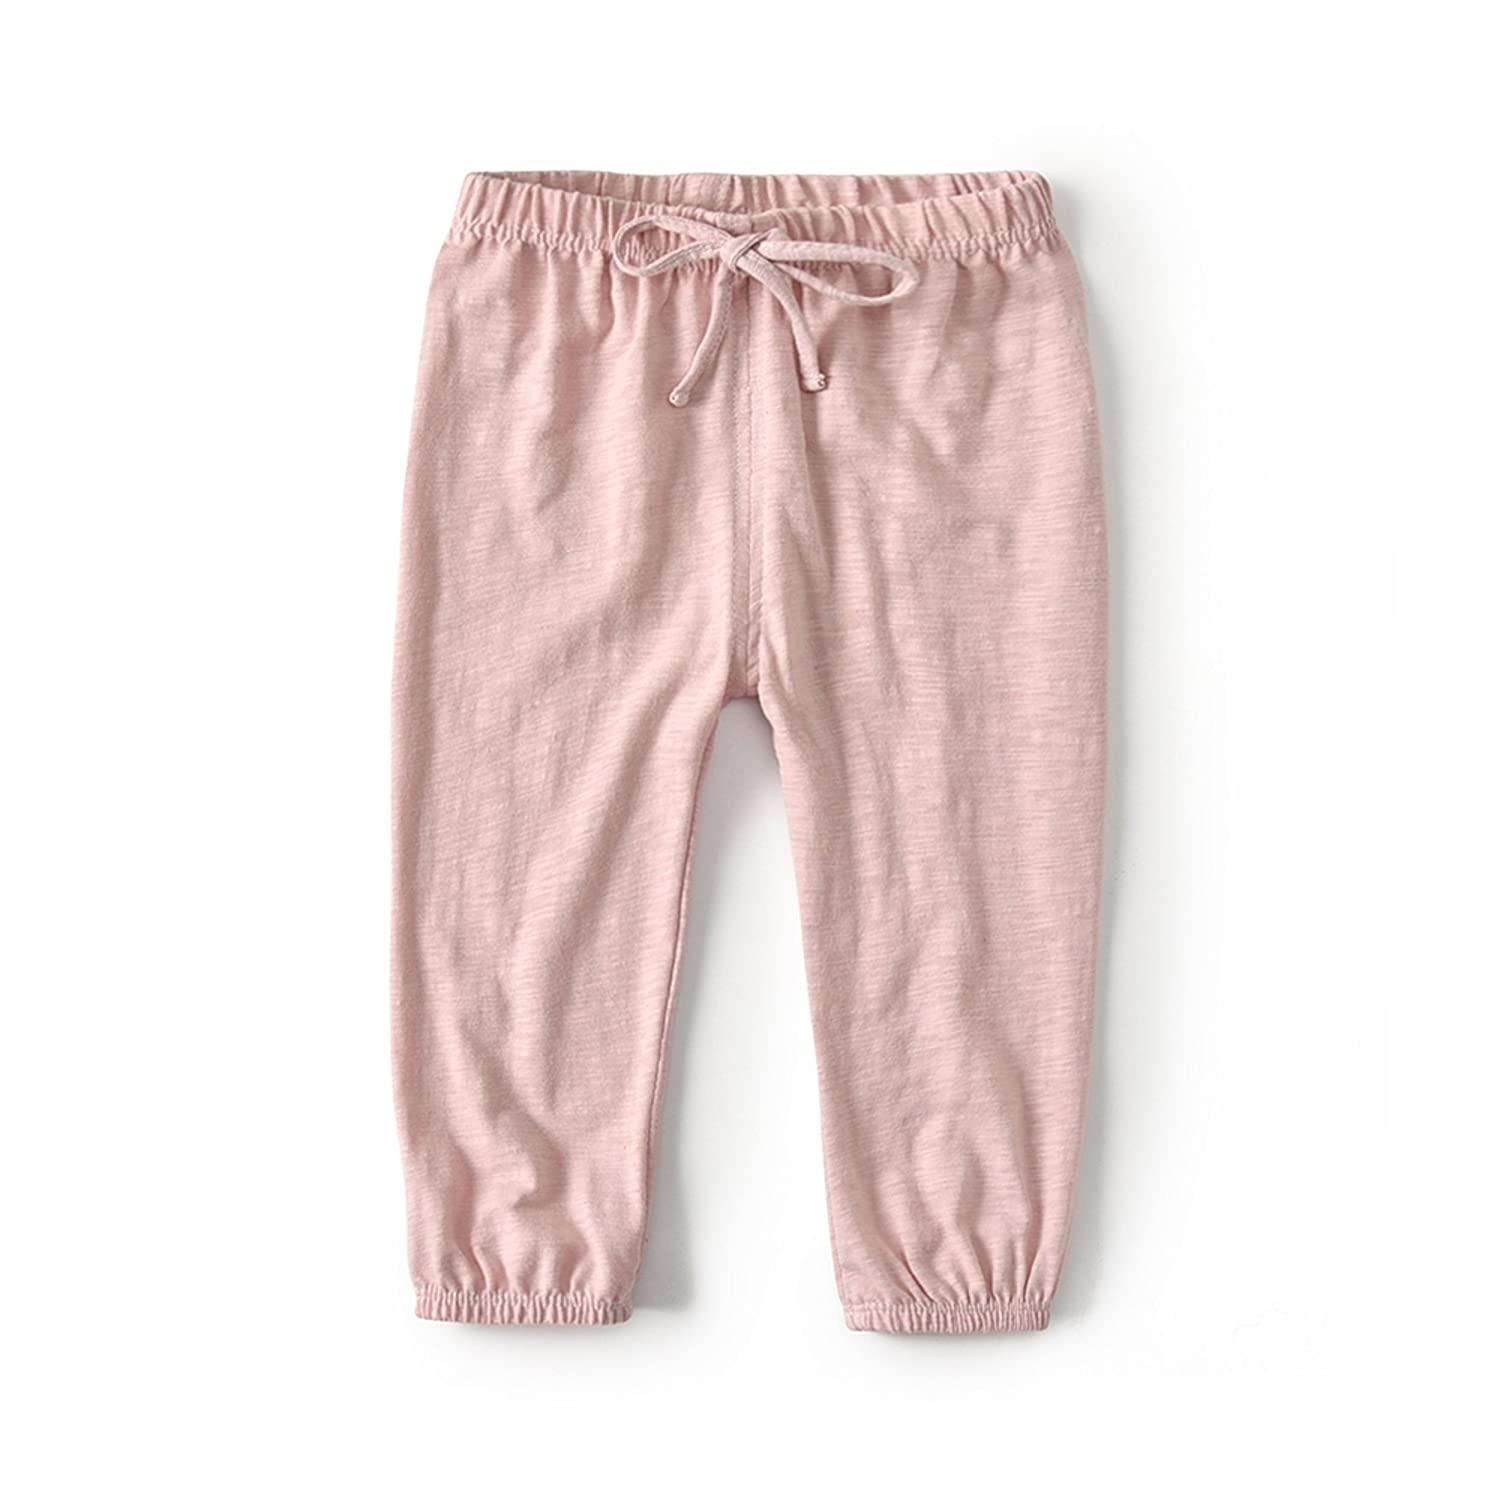 1 Pack 2 Pack HUAER/& Unisex Baby Boys Girls Casual Pants Anti-Mosquito Pants